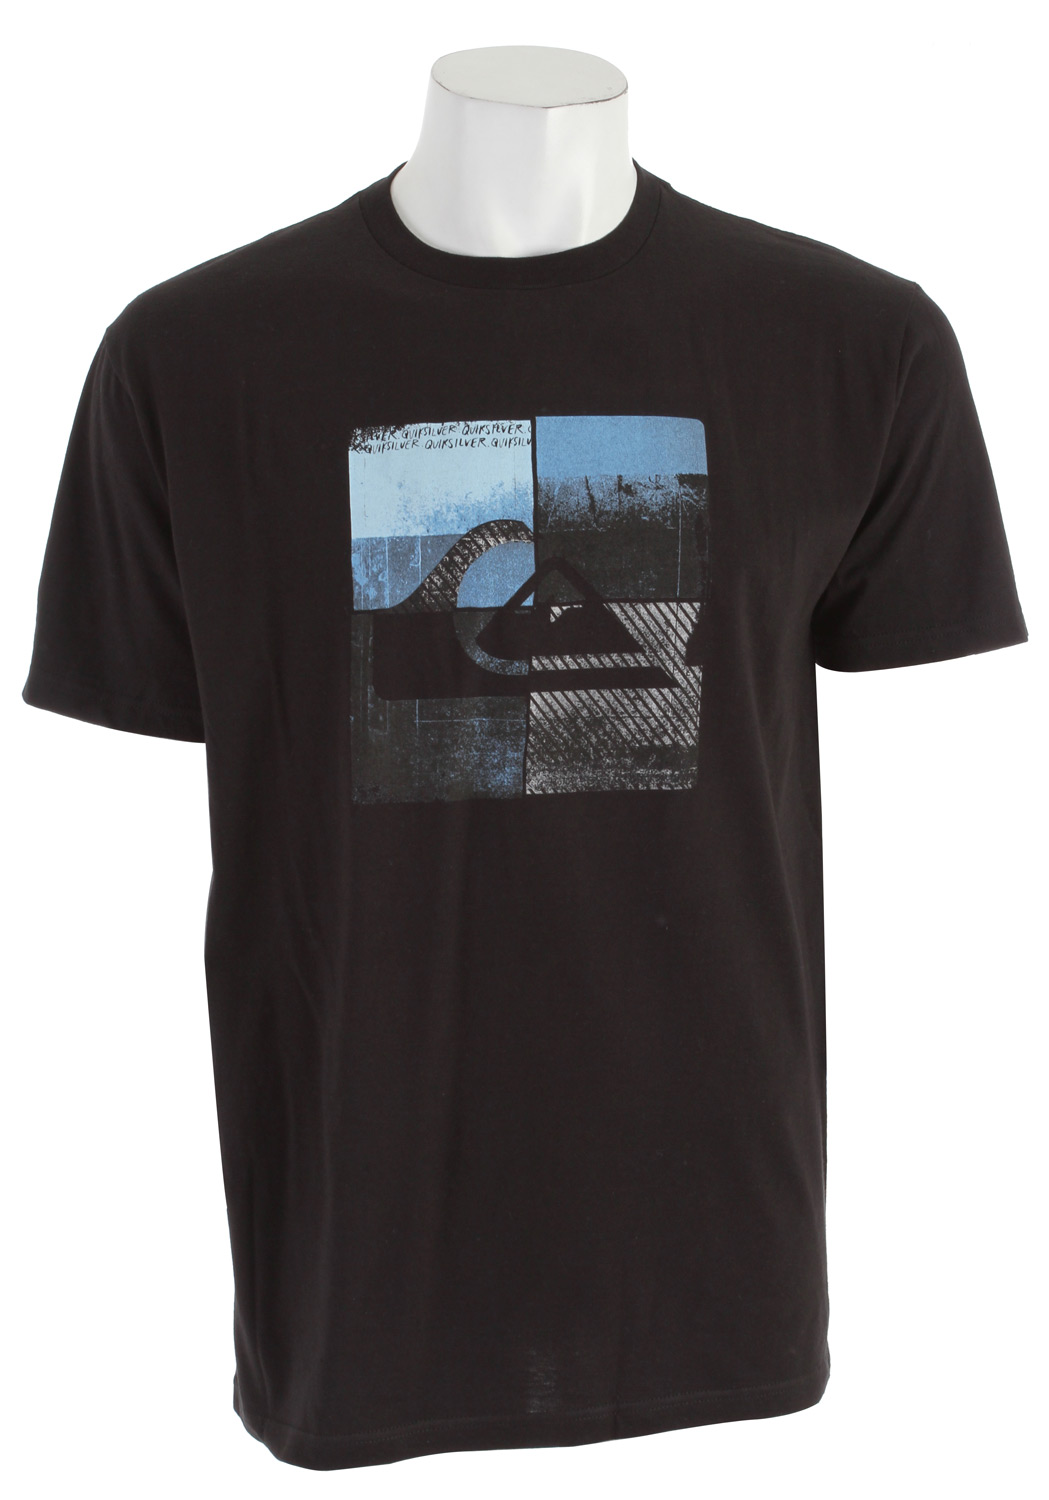 Surf Key Features of The Quiksilver Locust Star T-Shirt: Slim Fit Crew Neck Short Sleeve Solids: 100% Cotton Heathers: 50% cotton/50% polyester - $14.95